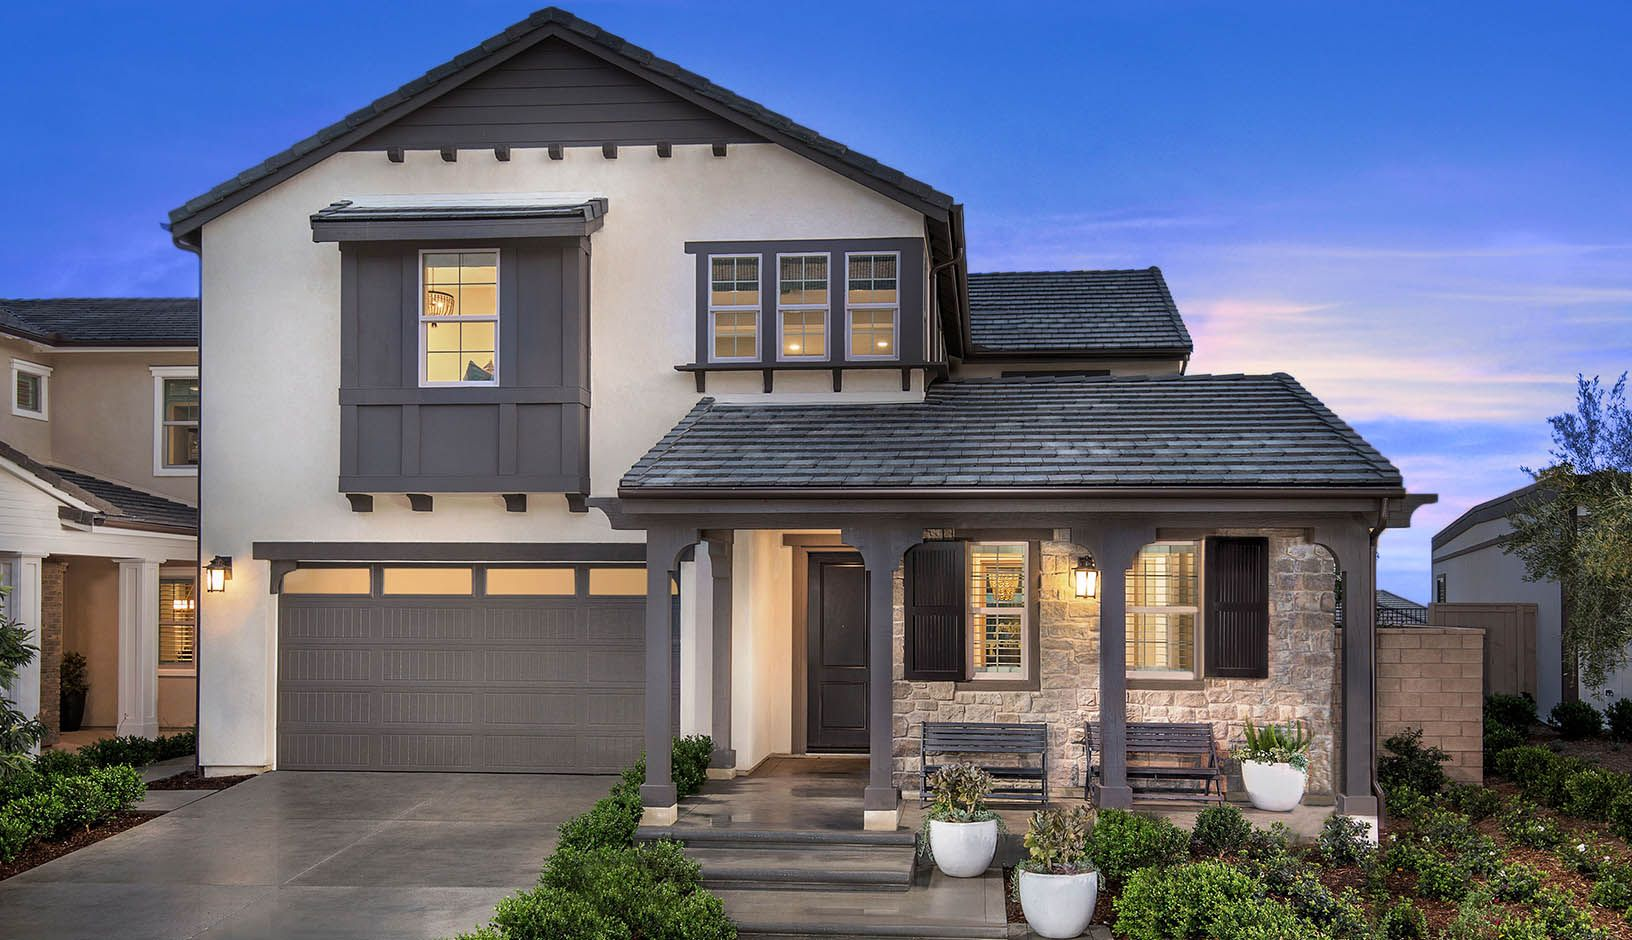 Single Family for Sale at Bradford At Rosedale - Residence 1 742 East Orange Blossom Way Azusa, California 91702 United States